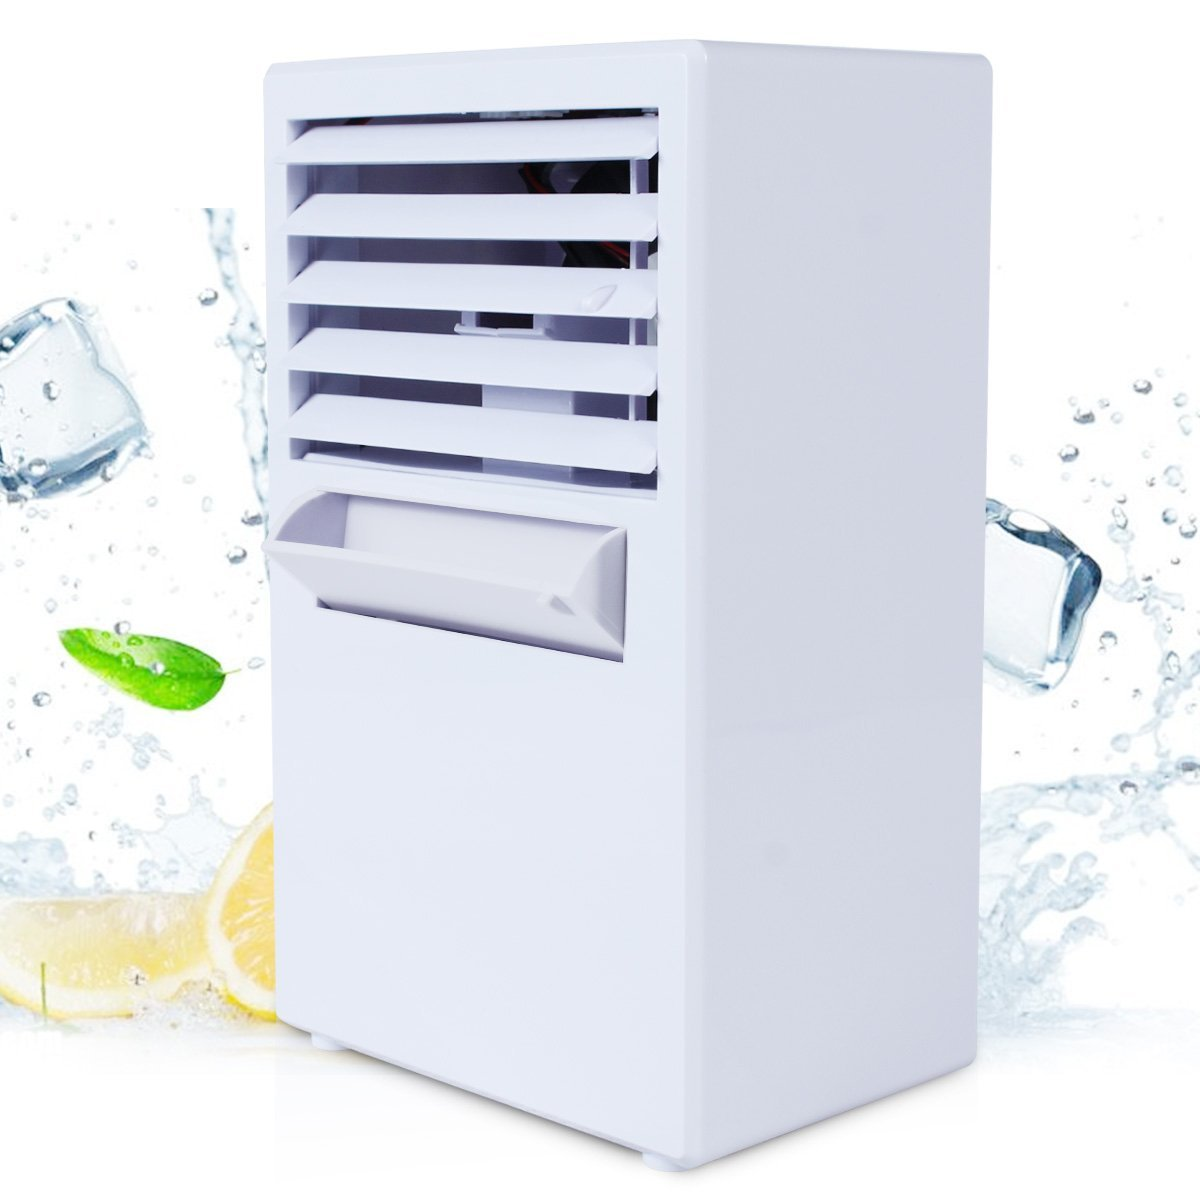 Mini Portable Air Conditioner Fan, 9.5 Inch Small Desktop Fan Quiet  Personal Misting Table